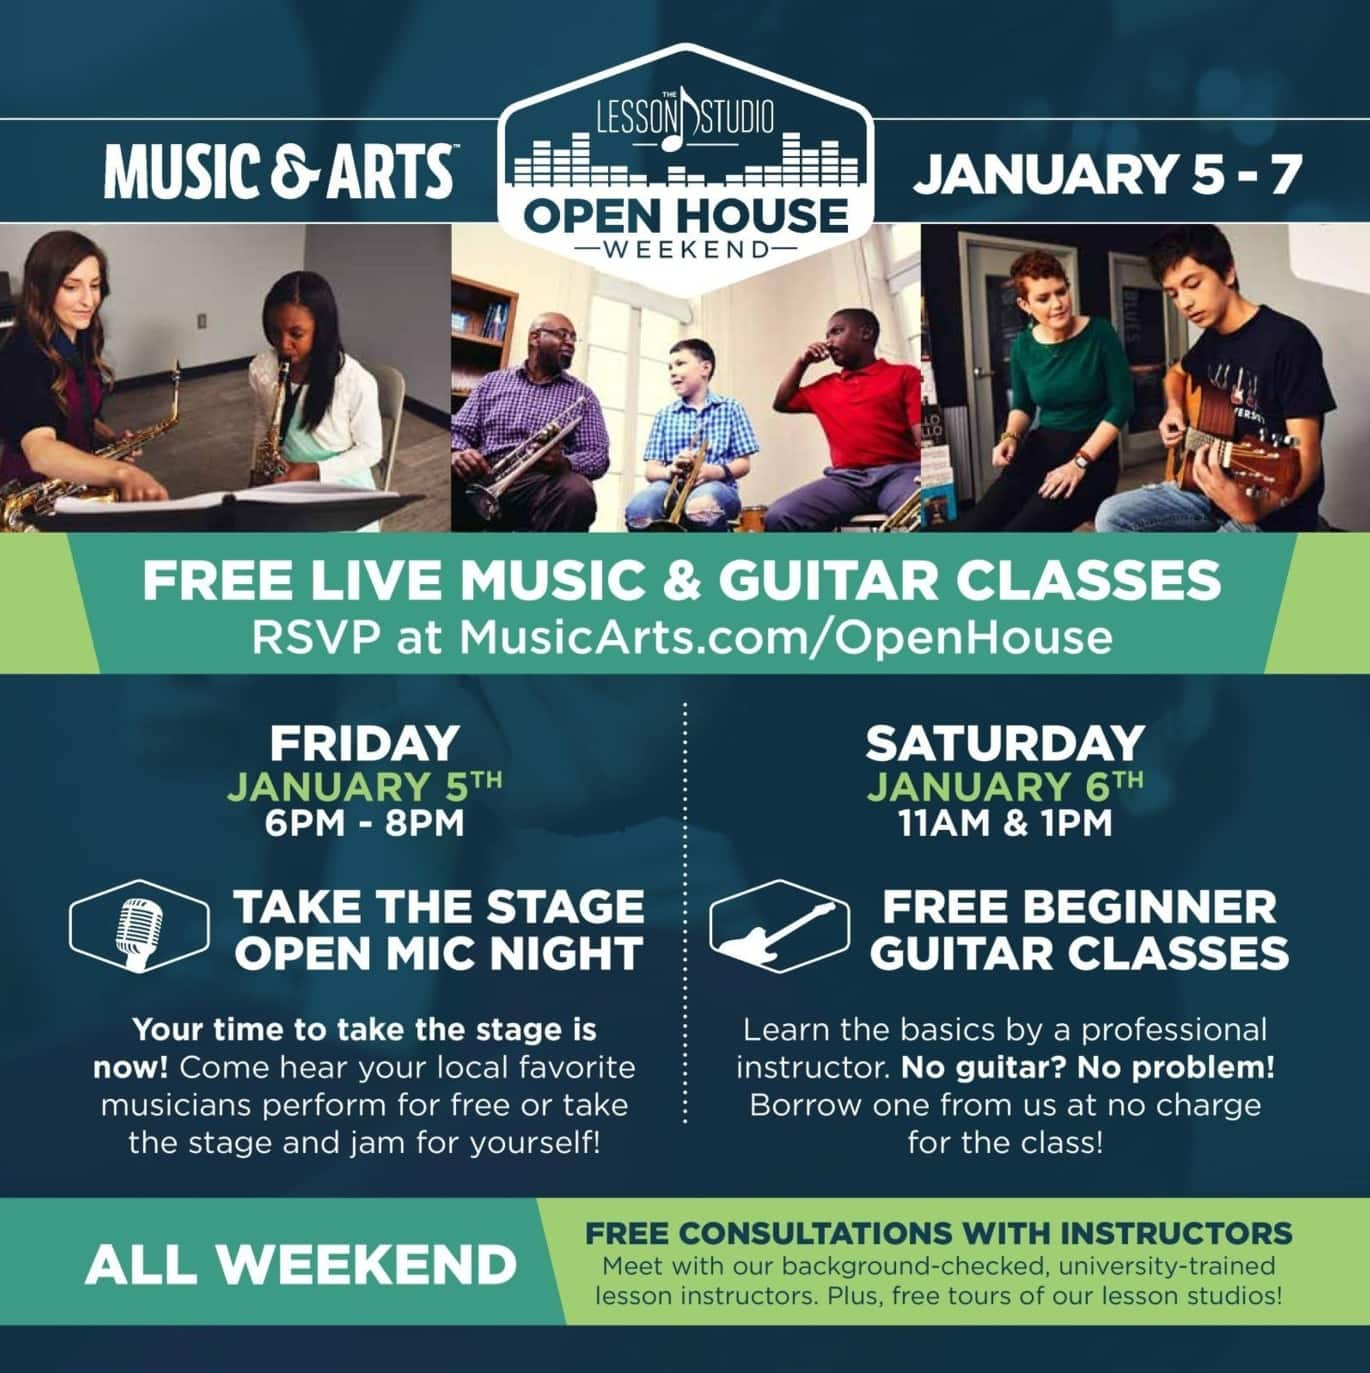 Music & Arts Black Friday: Open Mic Weekend w/ Live Music and Guitar Classes, Jan 5-7 - Free